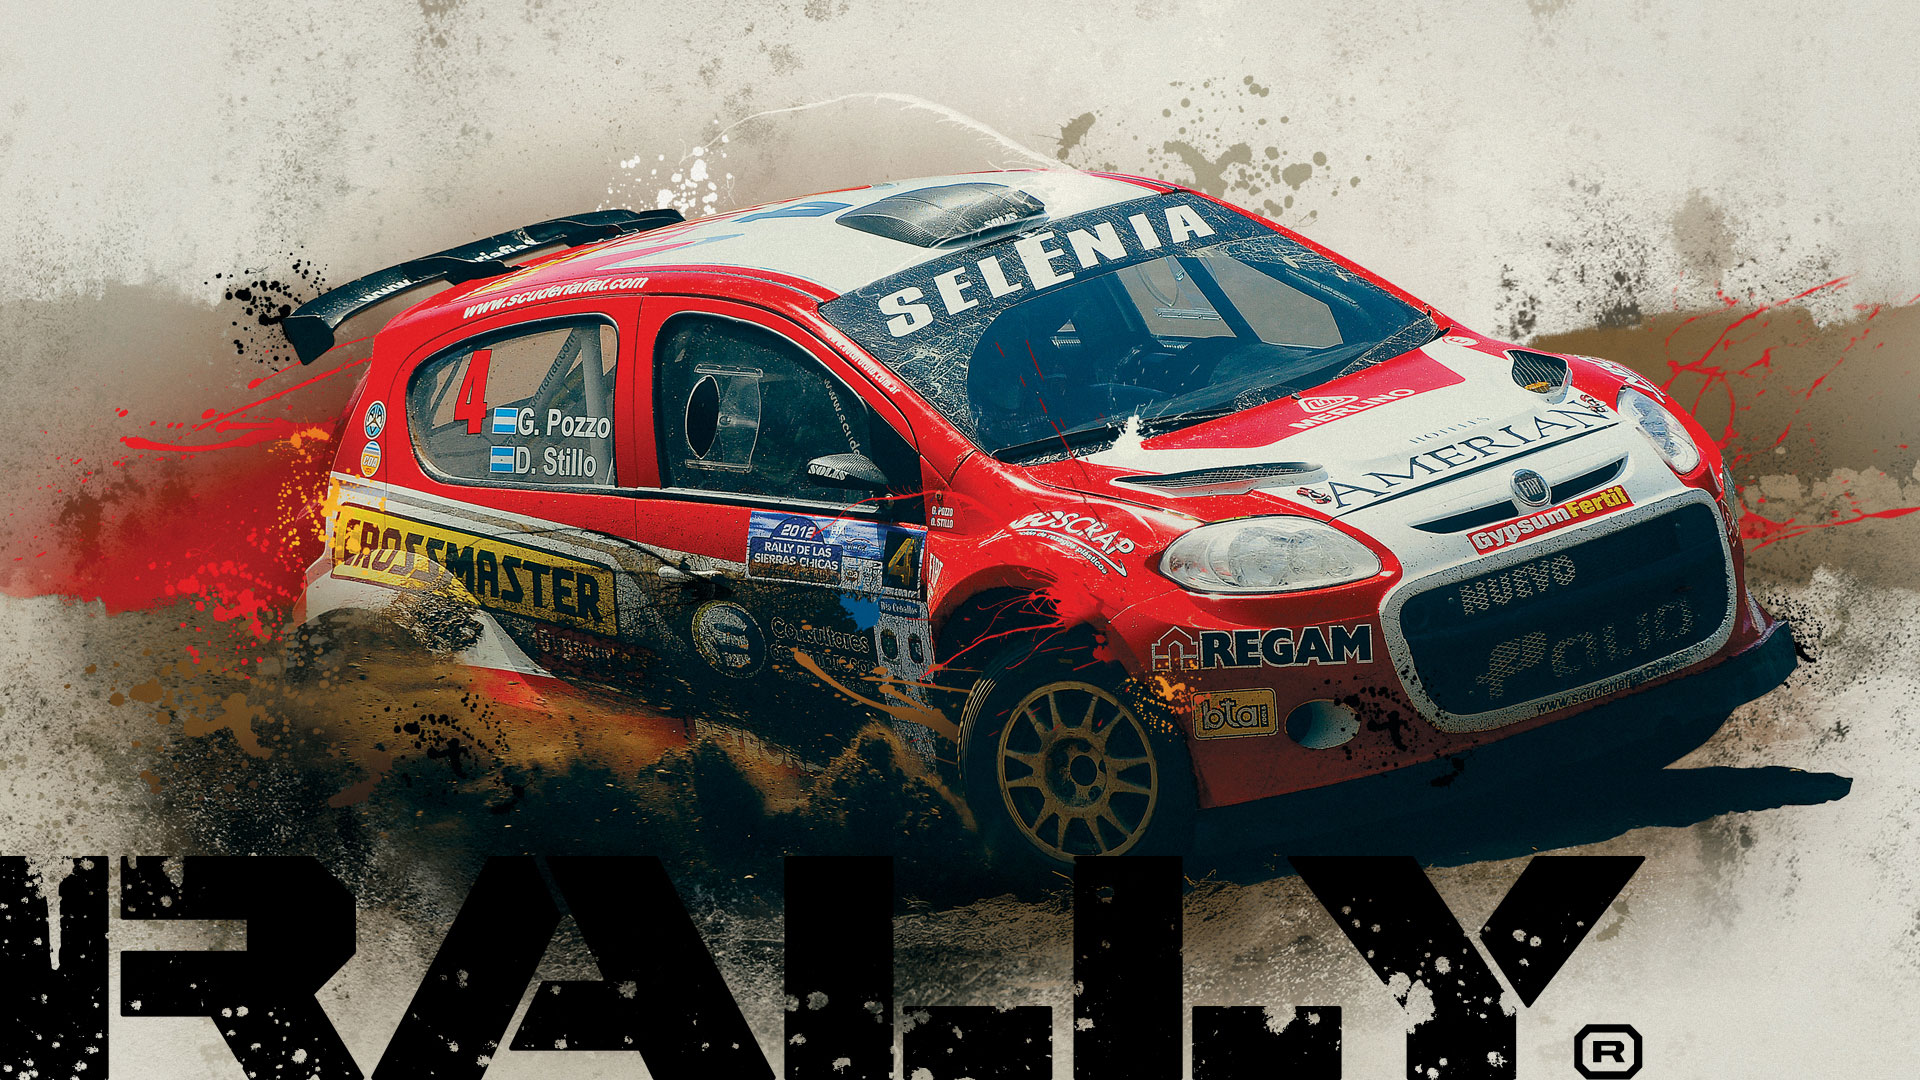 RALLY_ARGENTINO_02